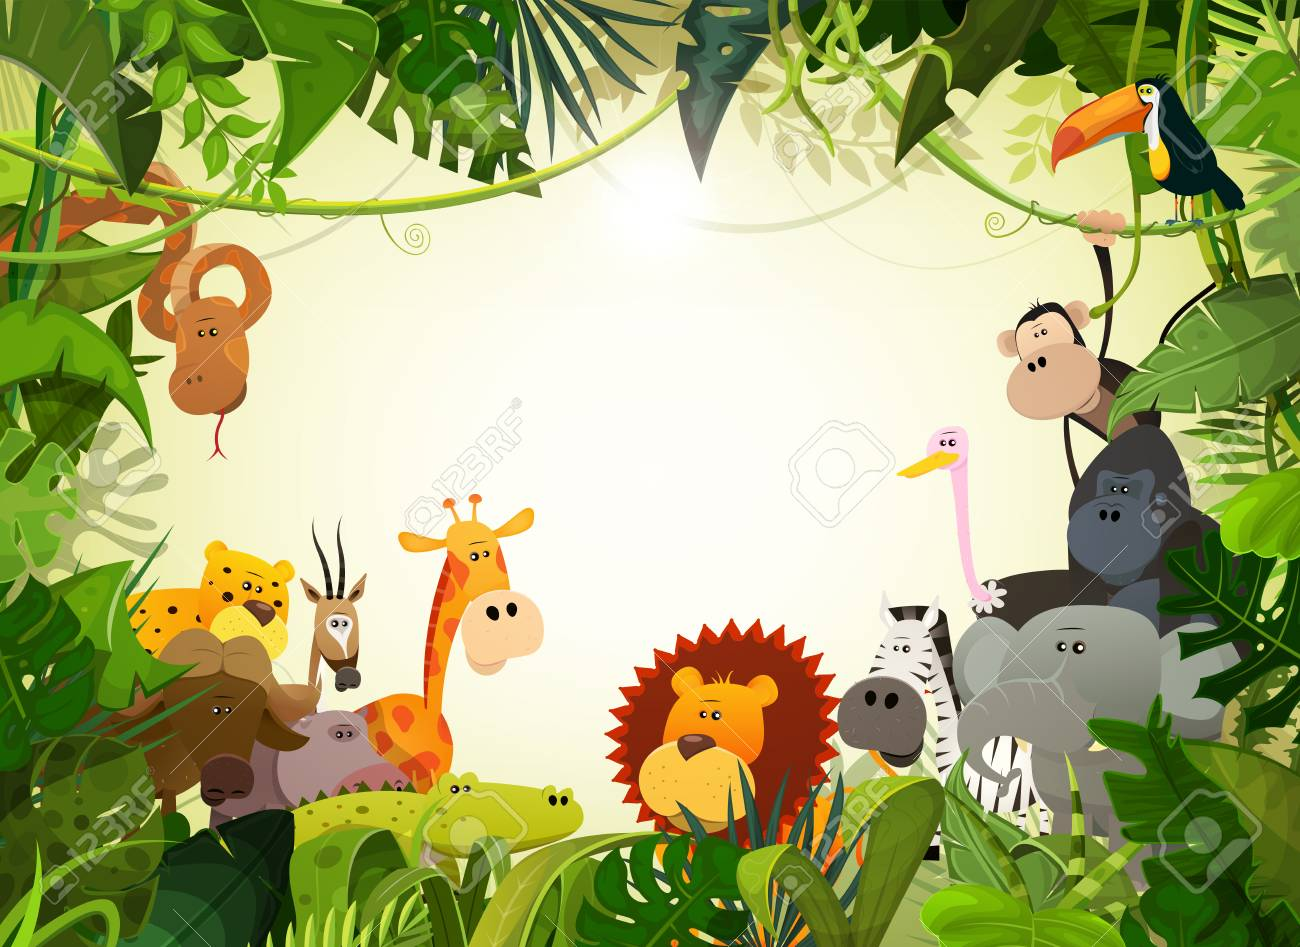 Illustration of cute cartoon wild animals from african savannah, including hippo, lion, gorilla, elephant, giraffe, gazelle, ostrich and zebra with jungle background - 98515166